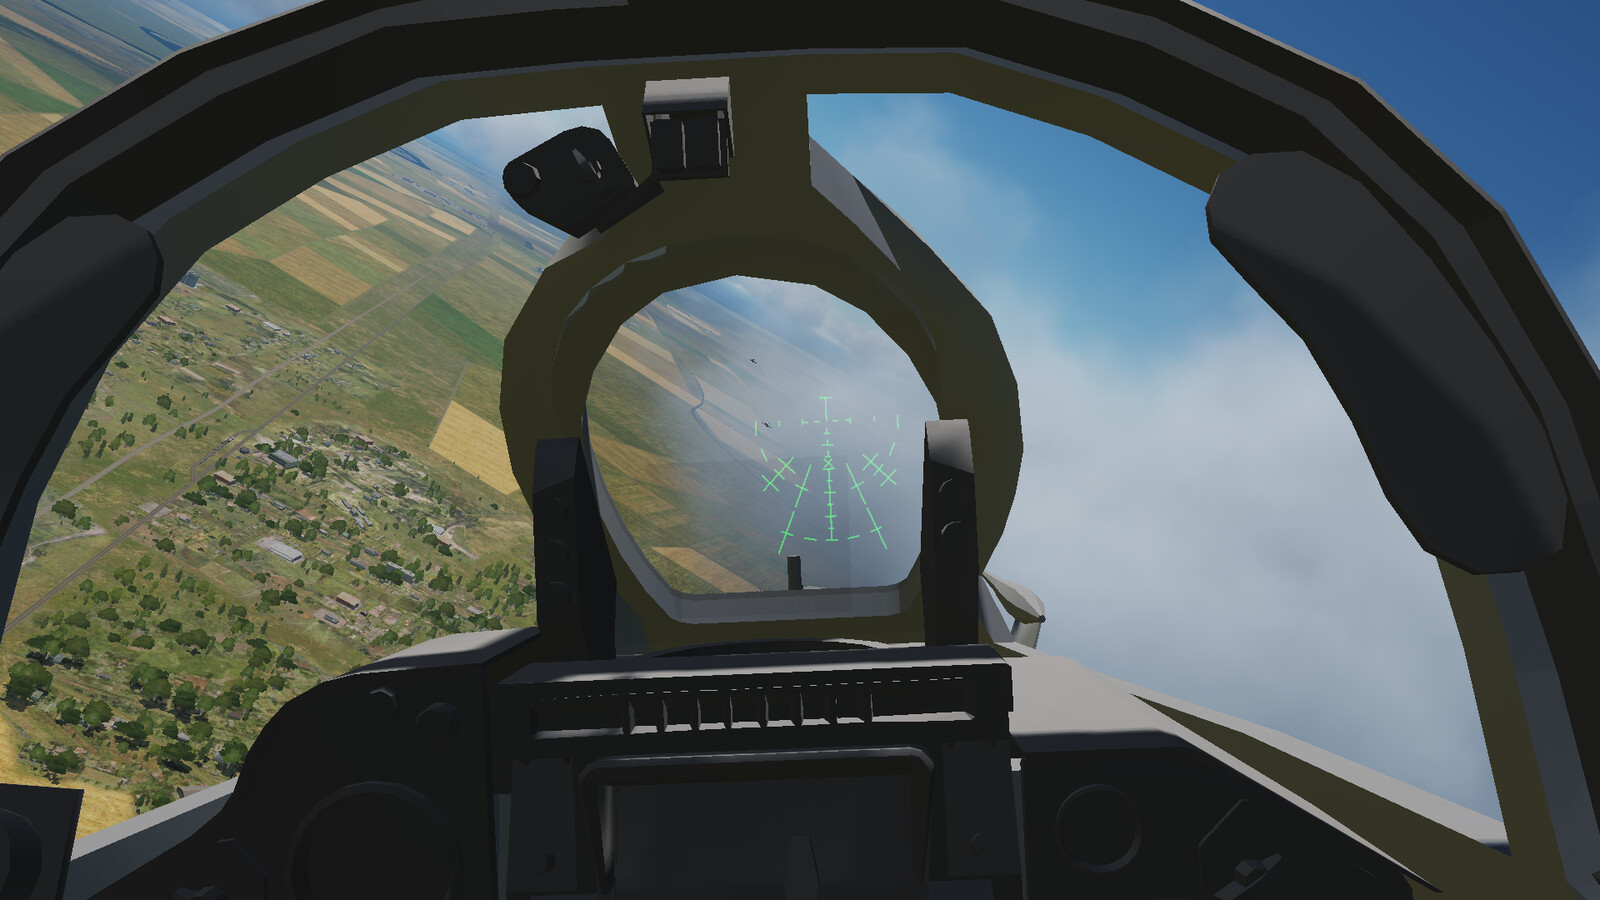 Testing weapons in a dogfight scenario against Hawks. (Don't ask for the backstory on why.)